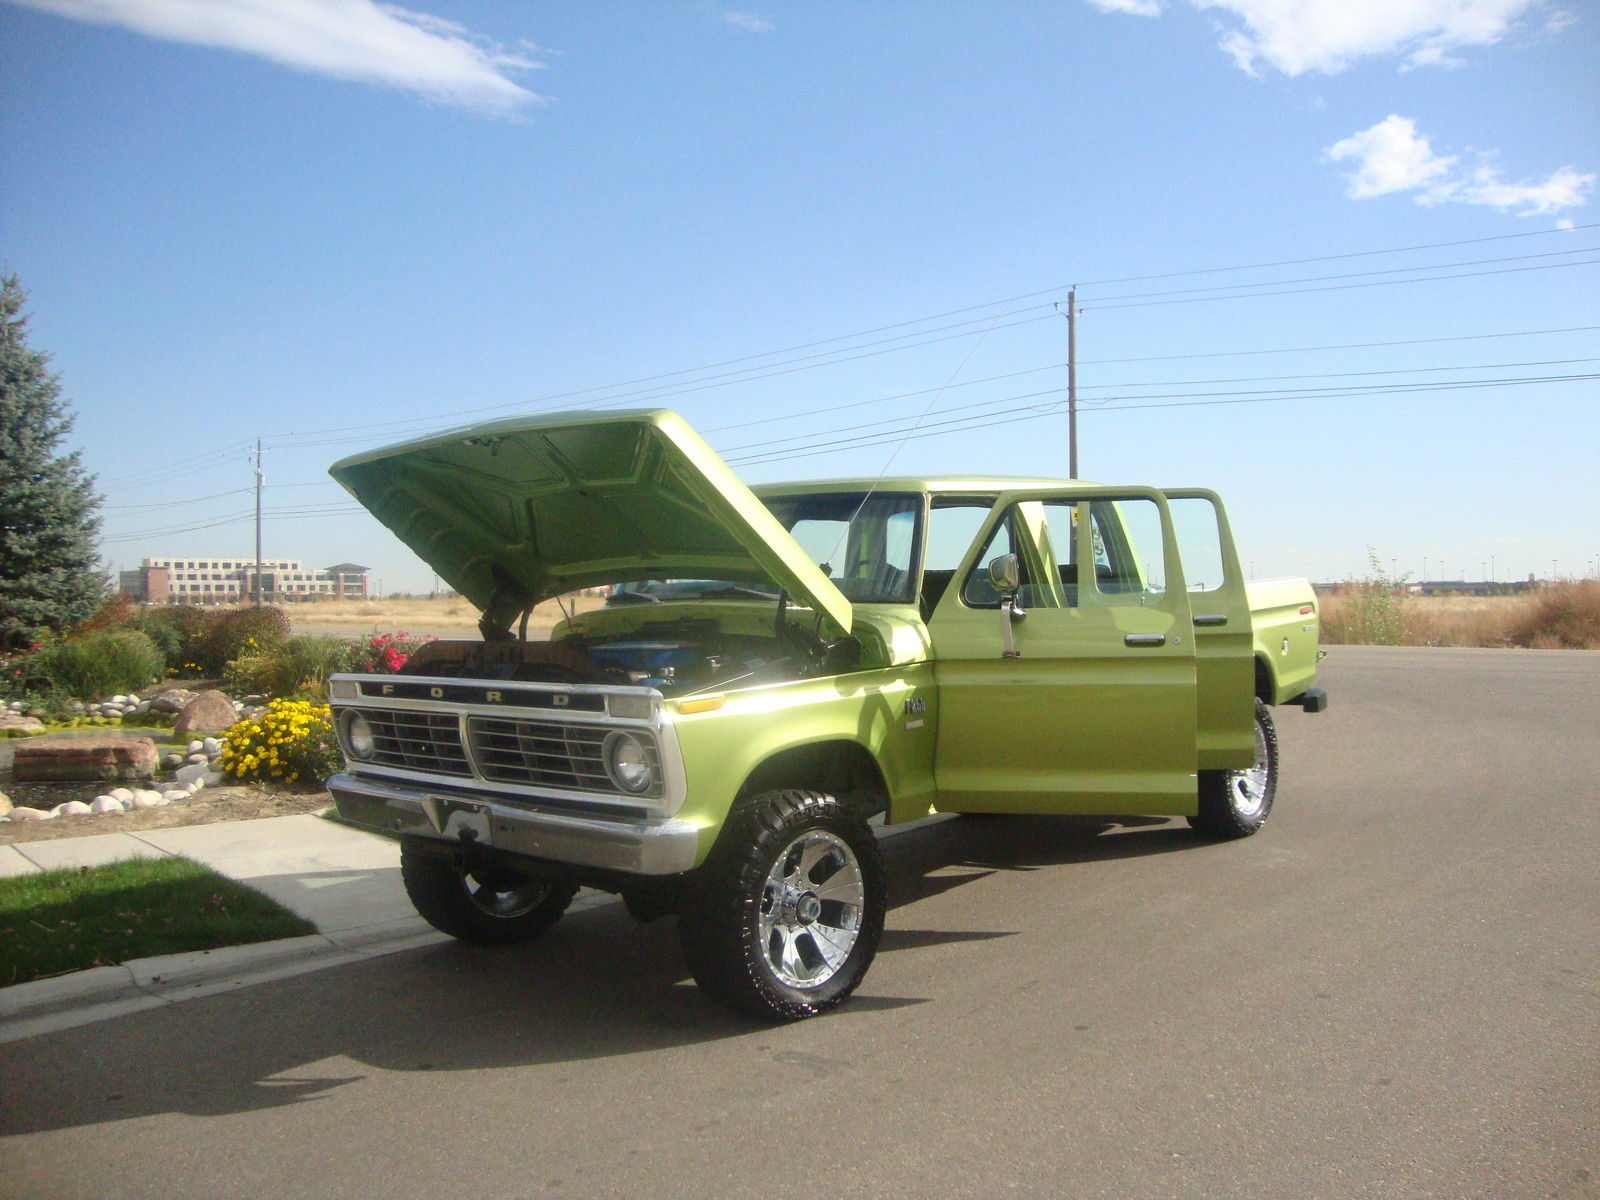 1974 ford f250 crew cab 4 door 4x4 in excellent shape see for your self classic ford f 250. Black Bedroom Furniture Sets. Home Design Ideas